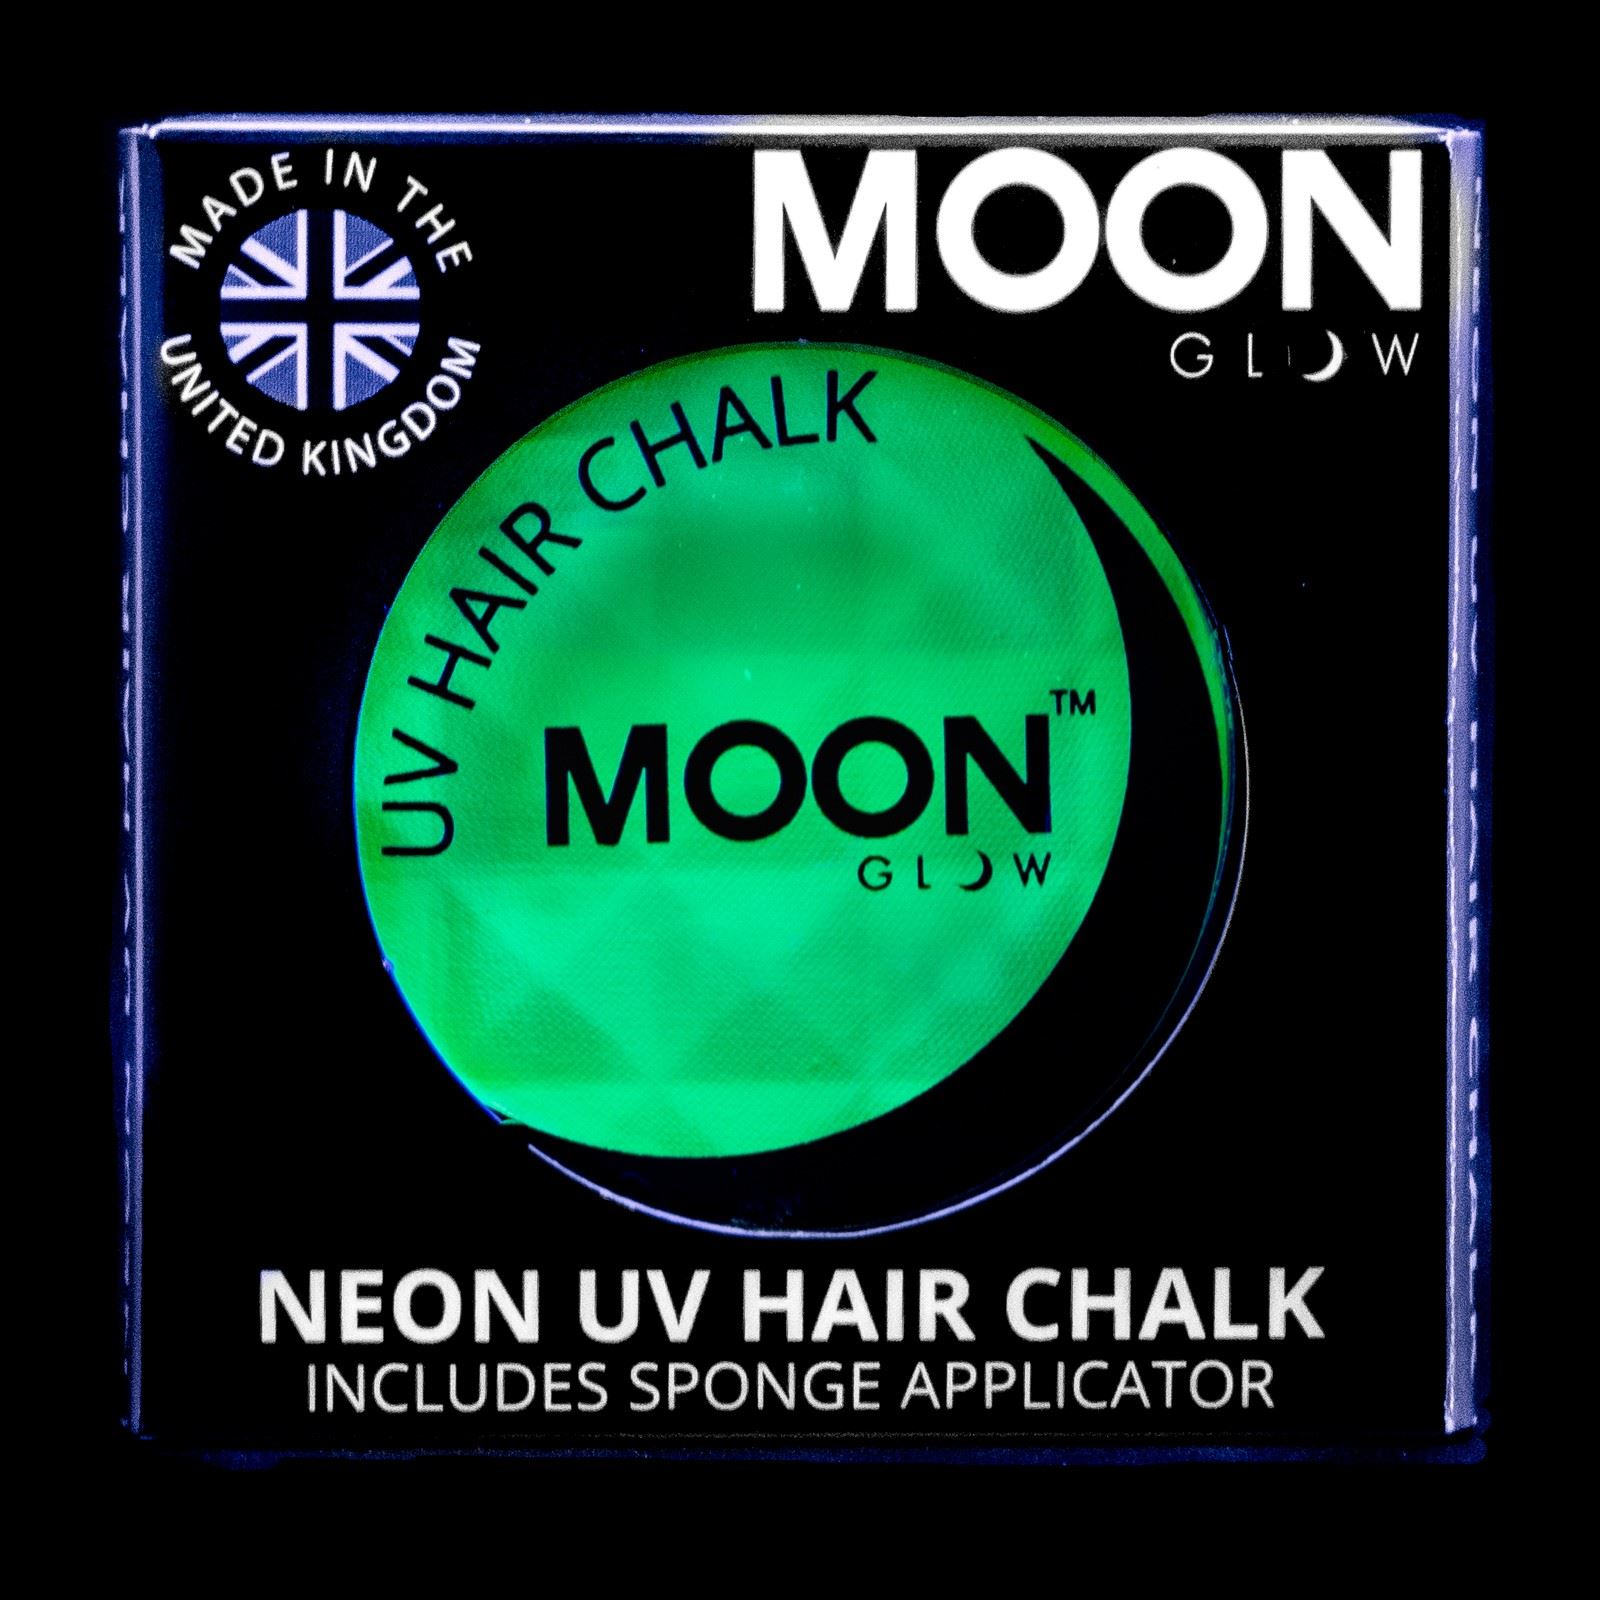 moon glow neon uv bright shiny hair chalk